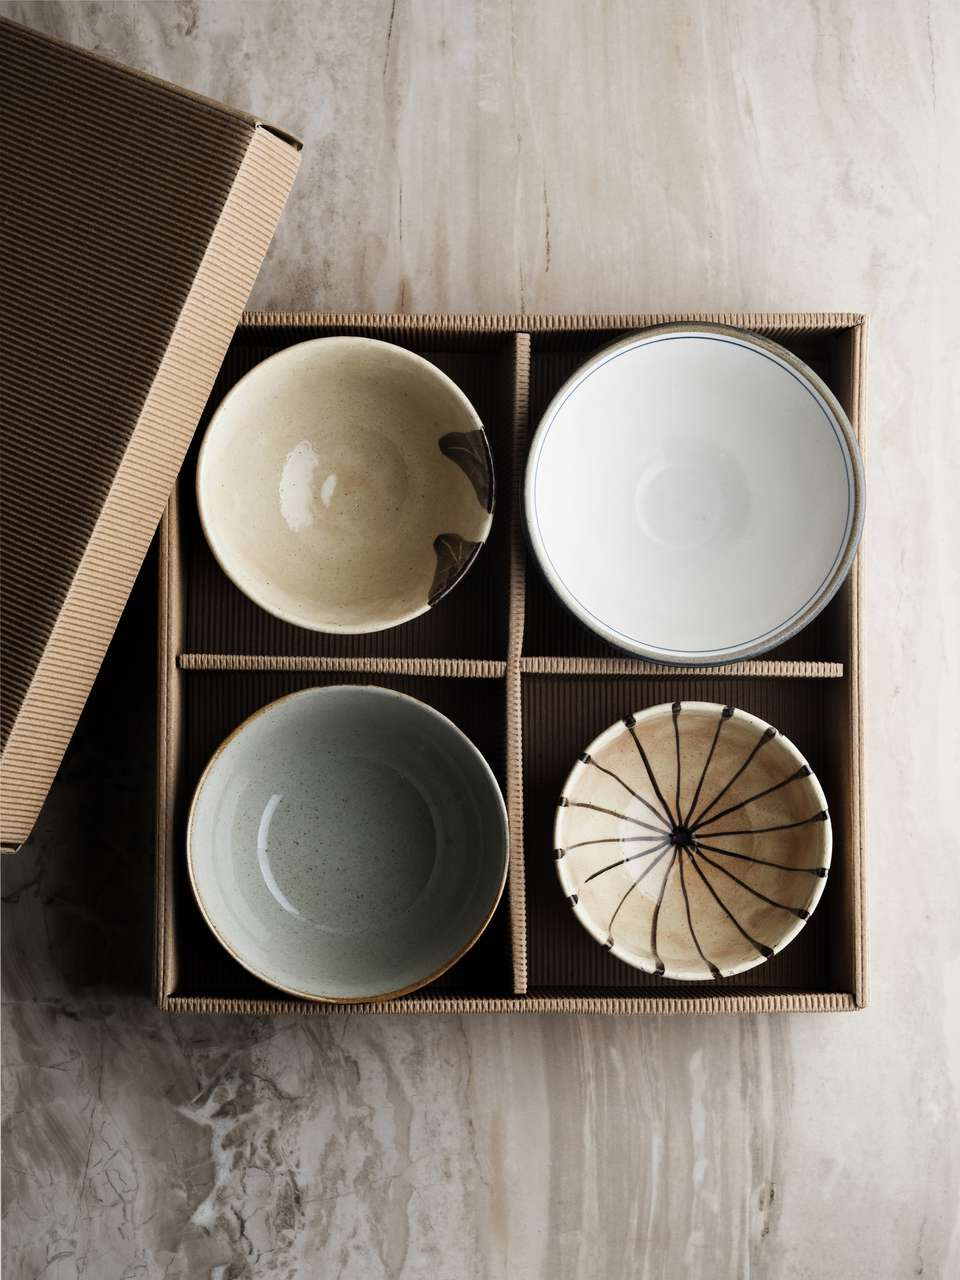 Empty Ceramic Bowl,Stack of plates and bowls in cardboard box,Bowl of china in cardboard box,Empty Ceramic Plate,